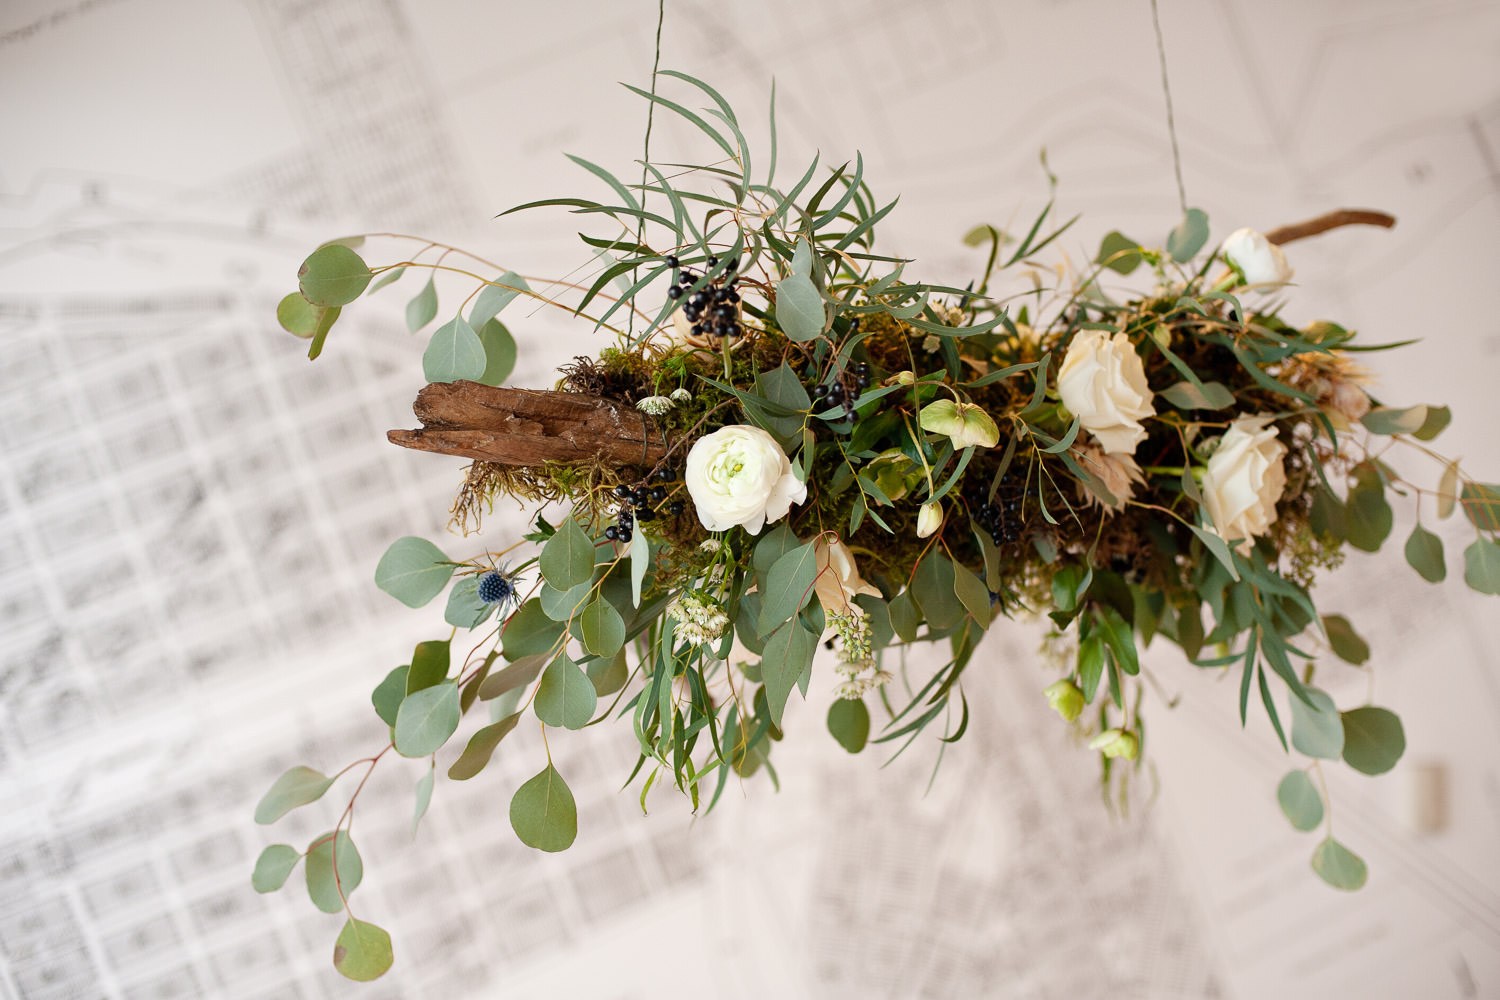 Hanging floral driftwood inspiration from Sweet Blooms captured by Calgary wedding photographer Tara Whittaker